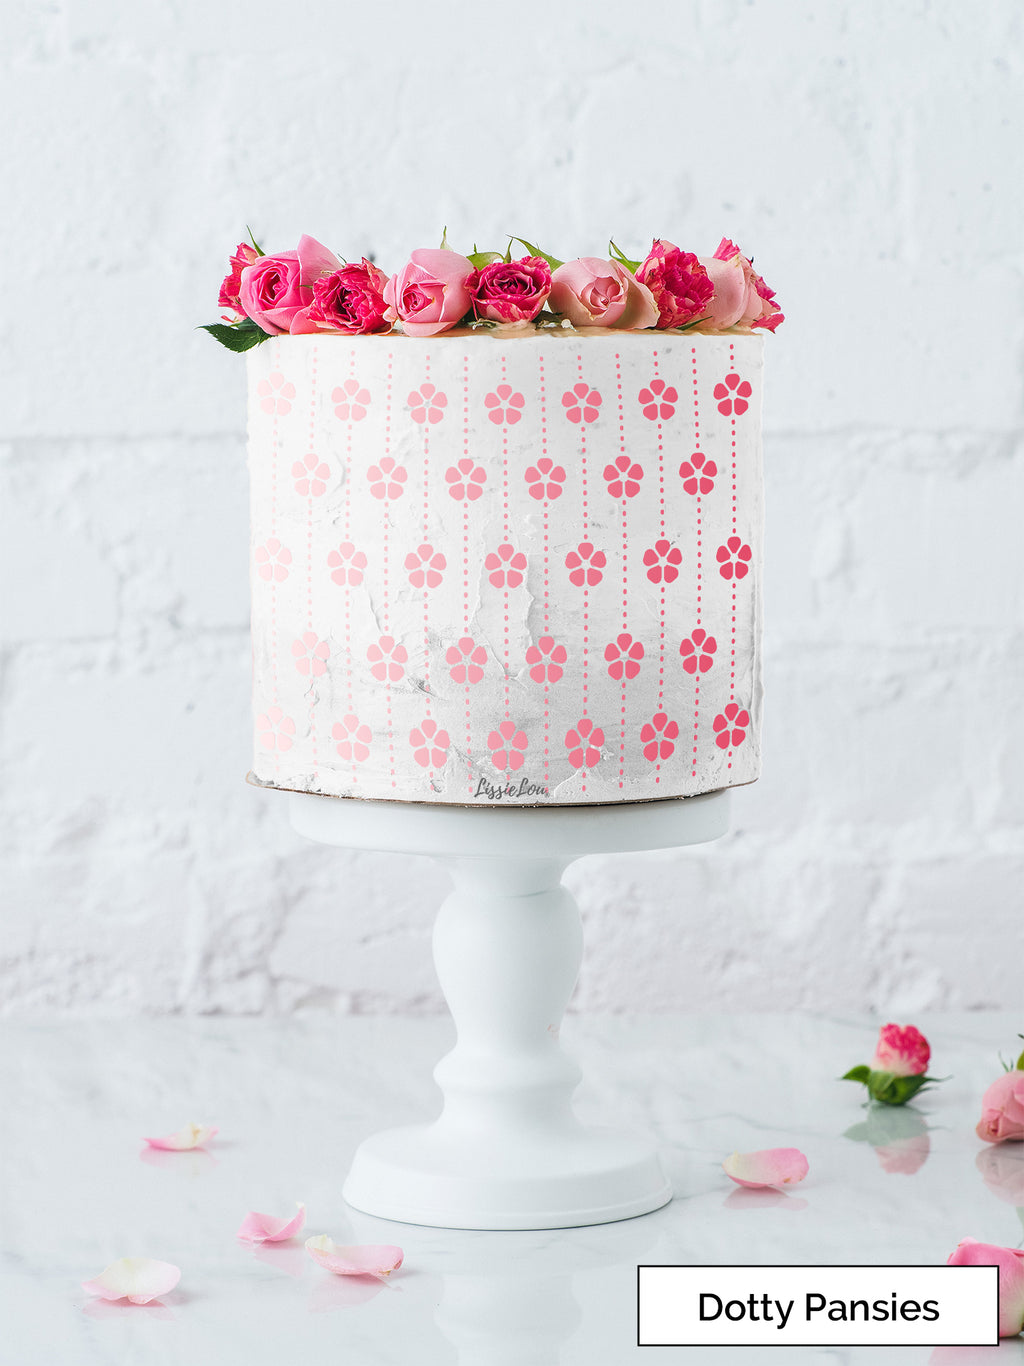 Dotty Pansies Cake Stencil - Full Size Design